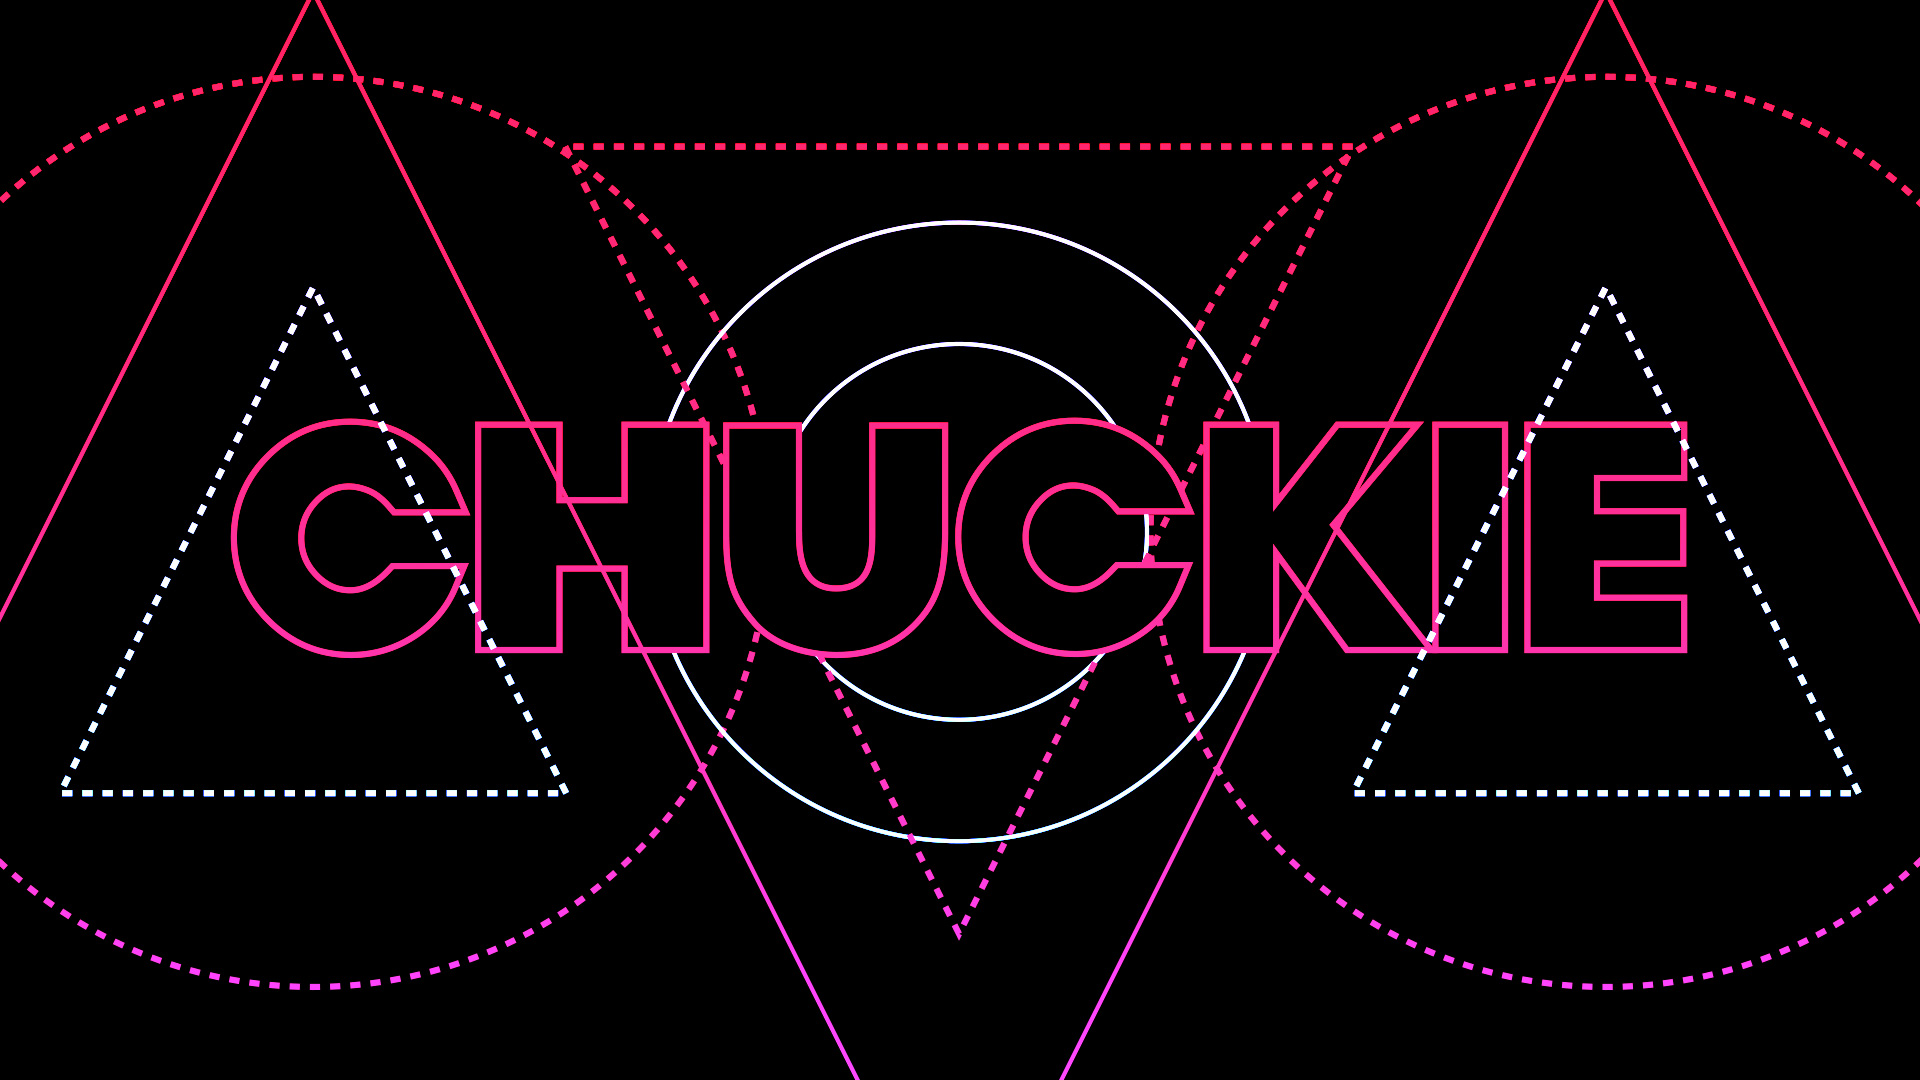 Chuckie Visuals